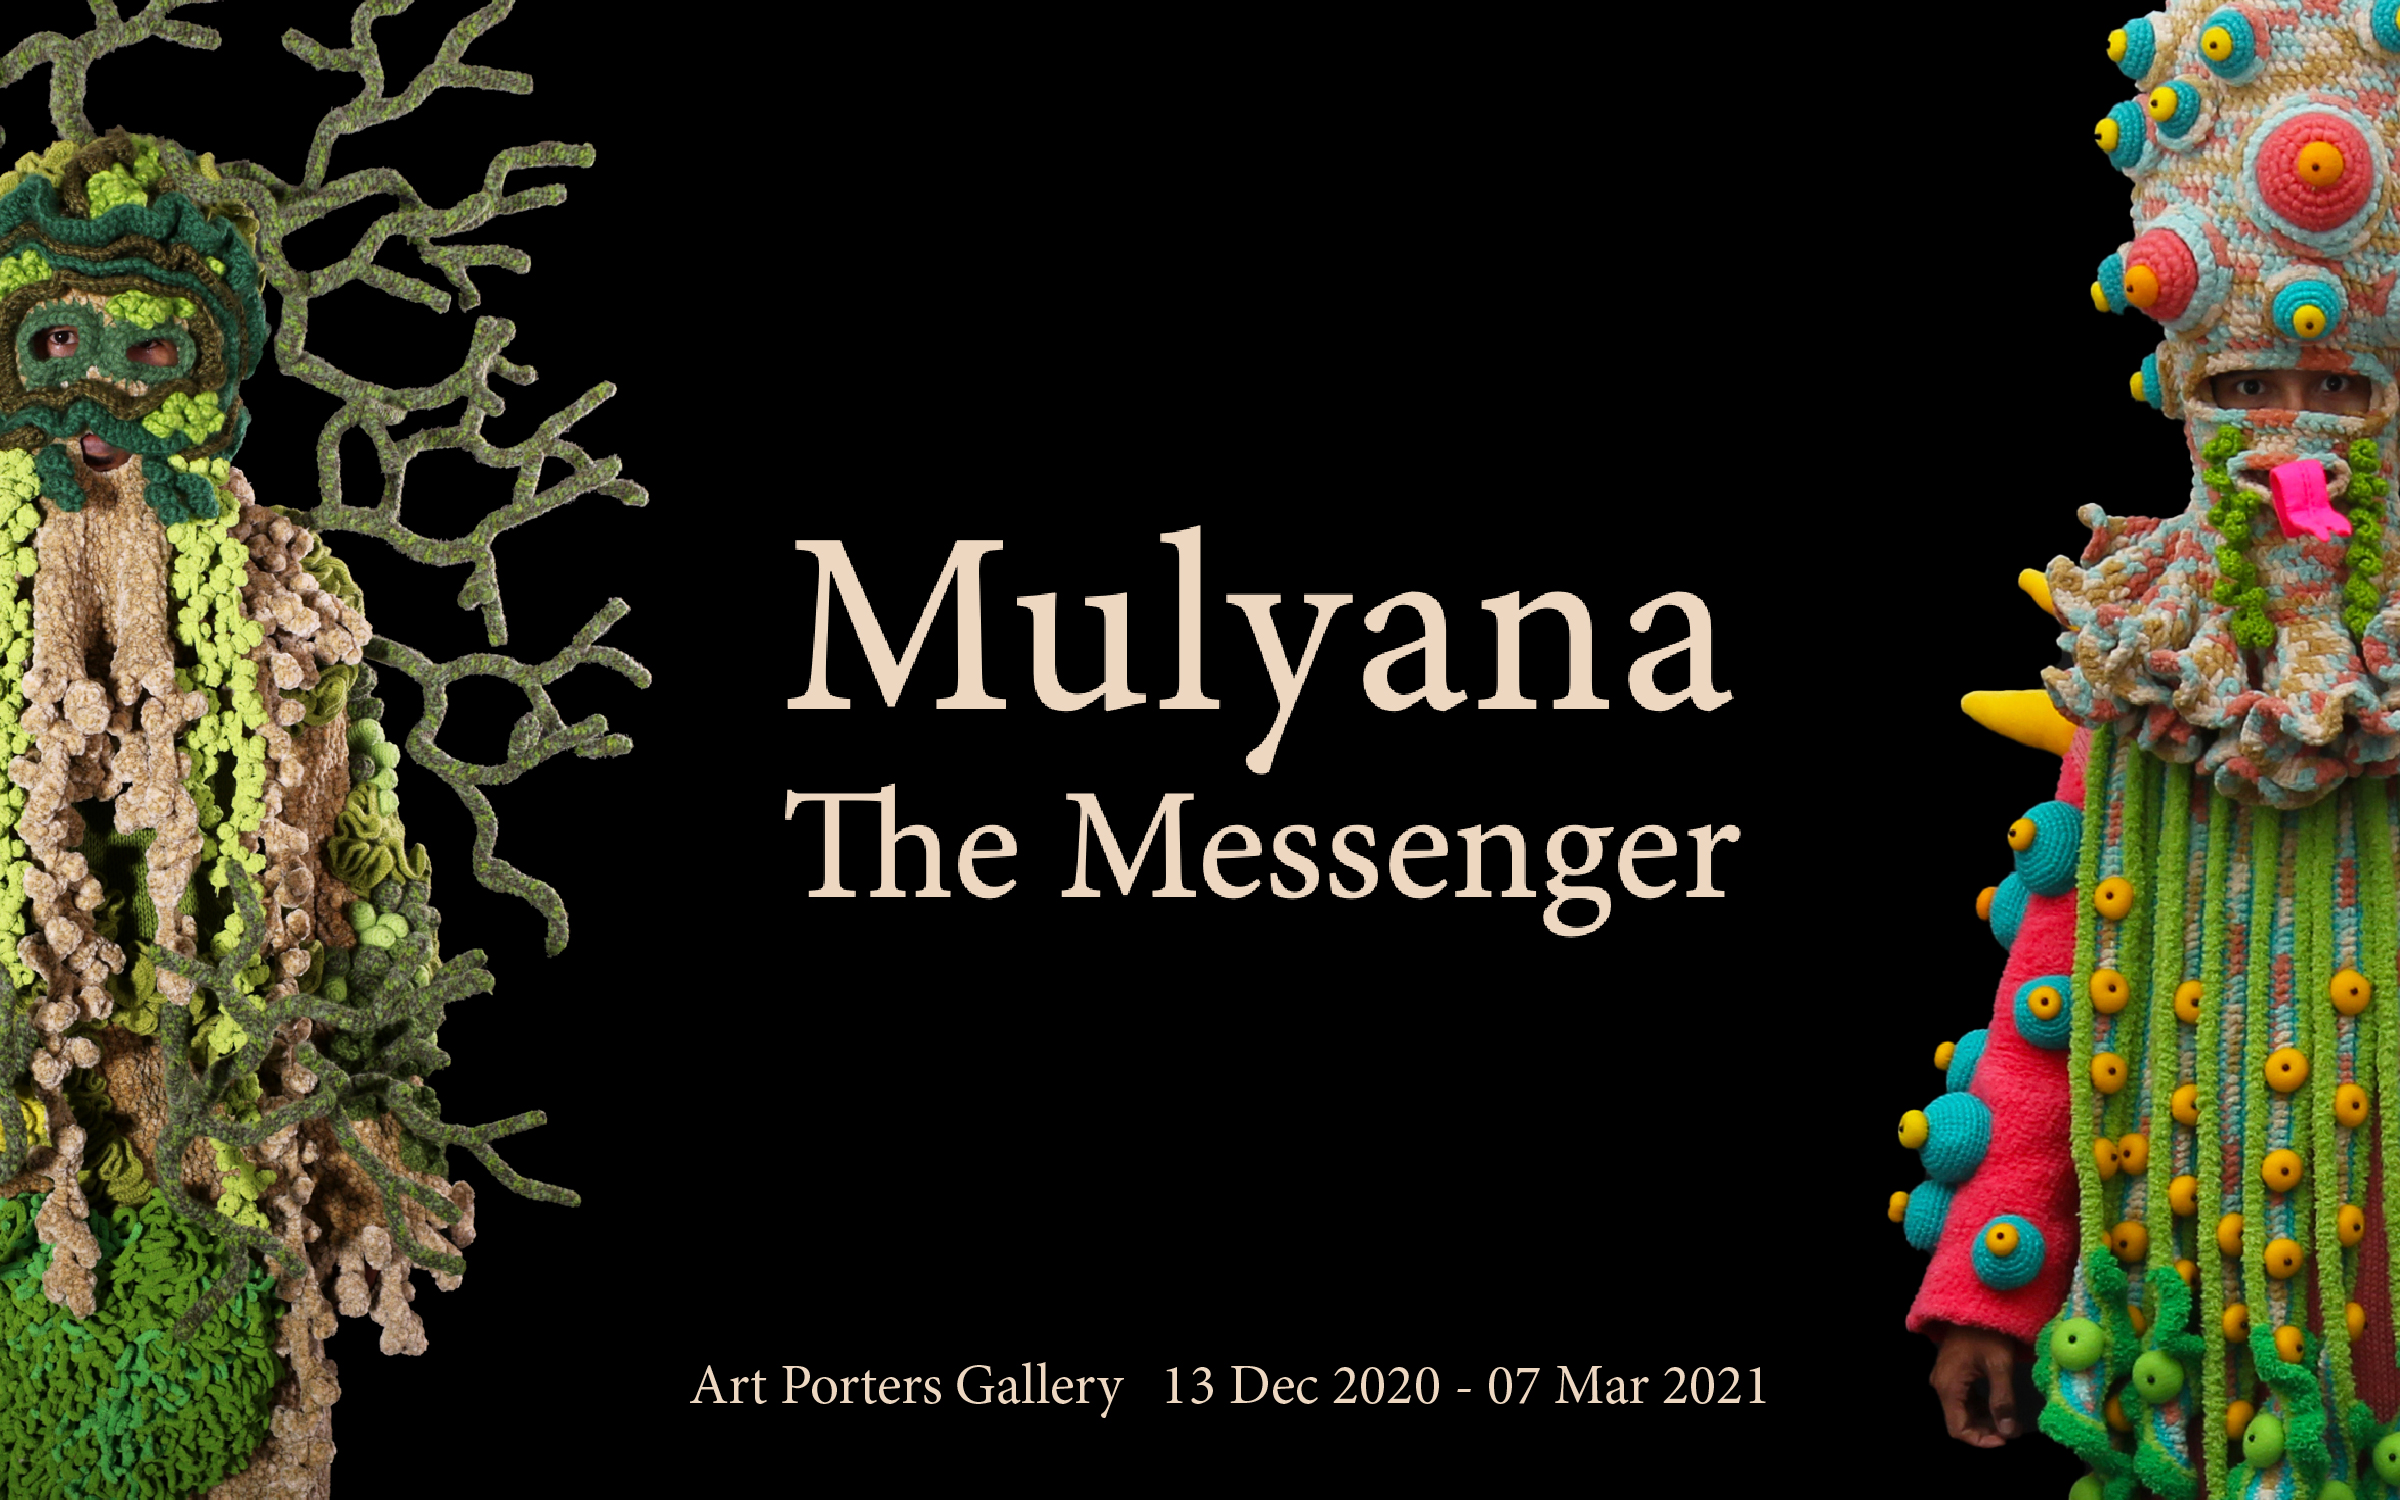 The Messenger by Mulyana